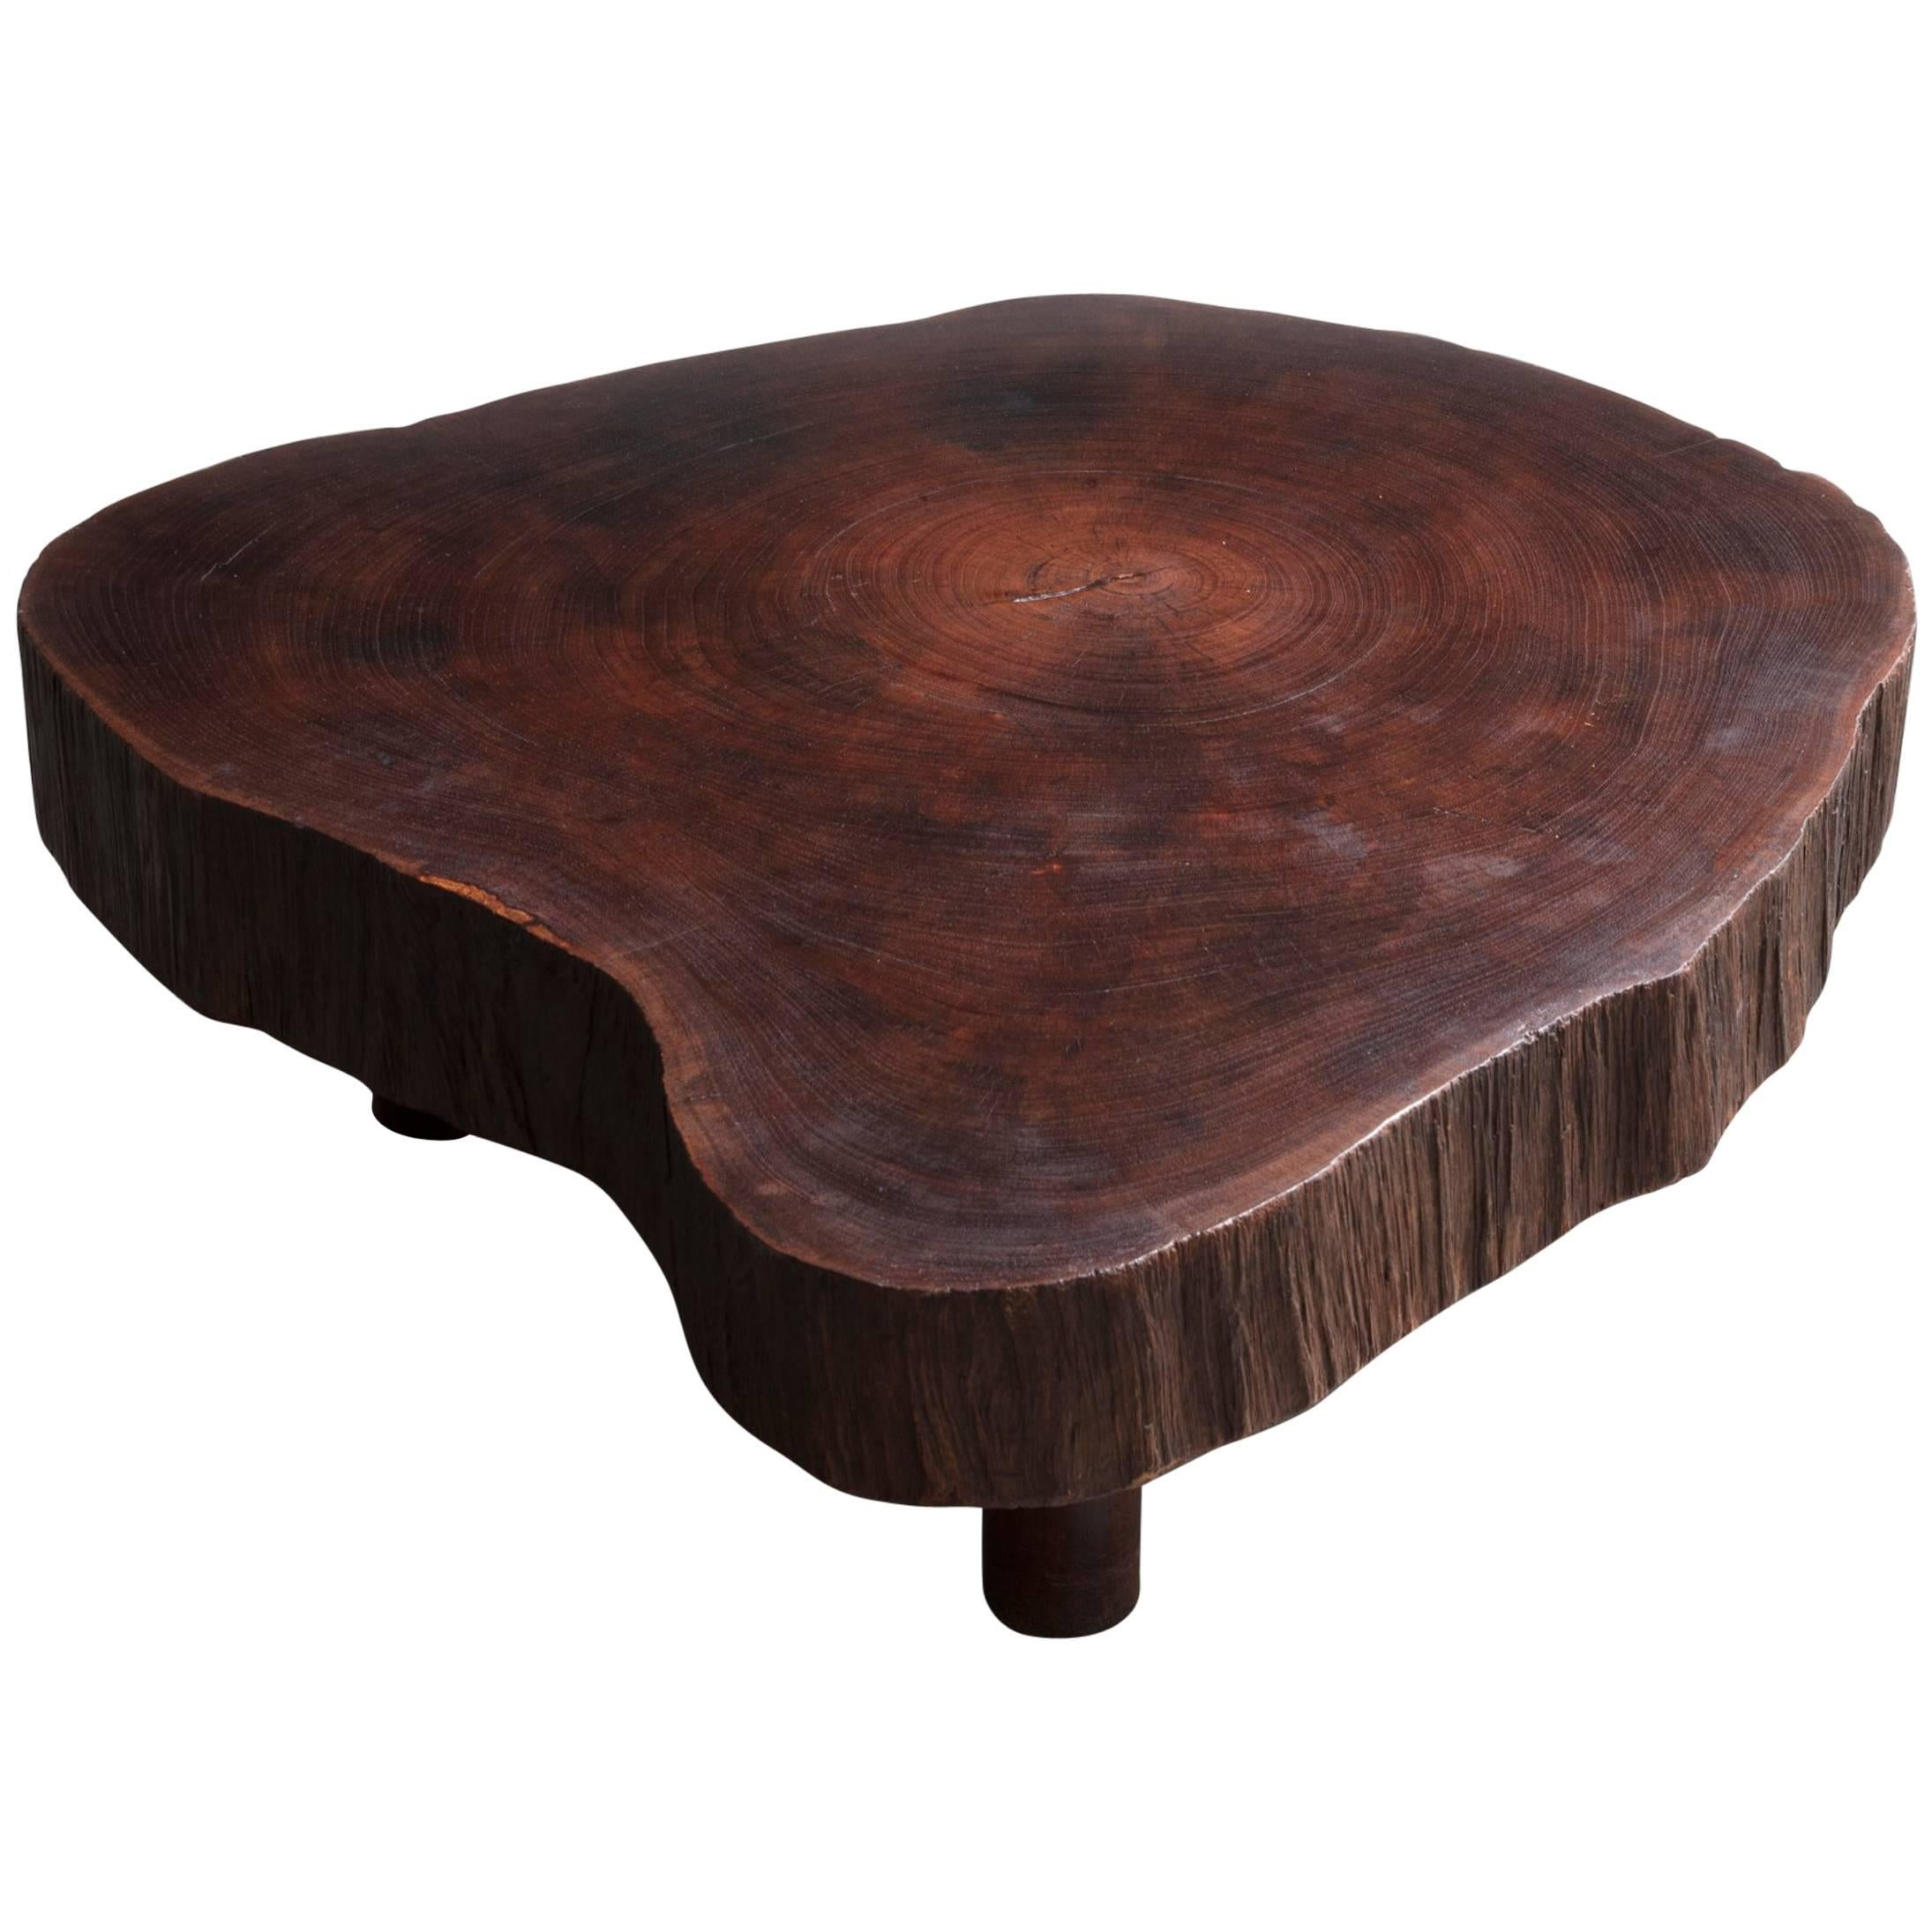 Solid Tree Trunk Coffee Table Made of a Thick Cross Section of